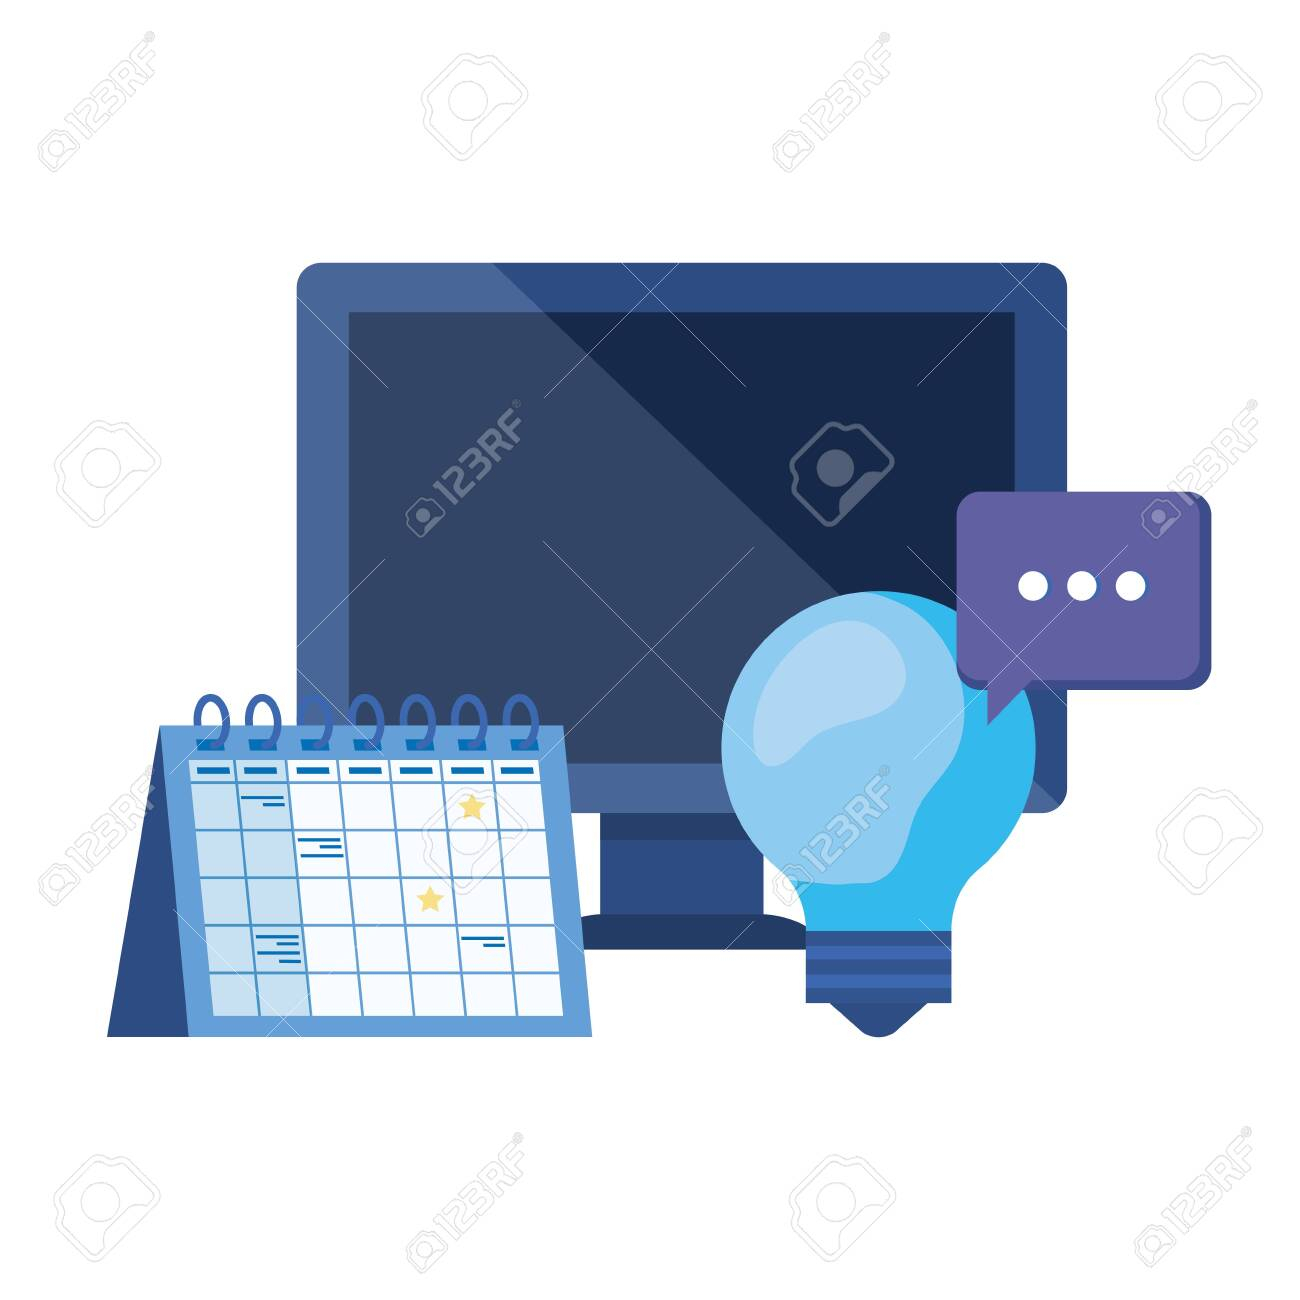 Desktop Computer With Calendar Reminder Vector Illustration Design in Desktop Calendar Reminder Free Full Version